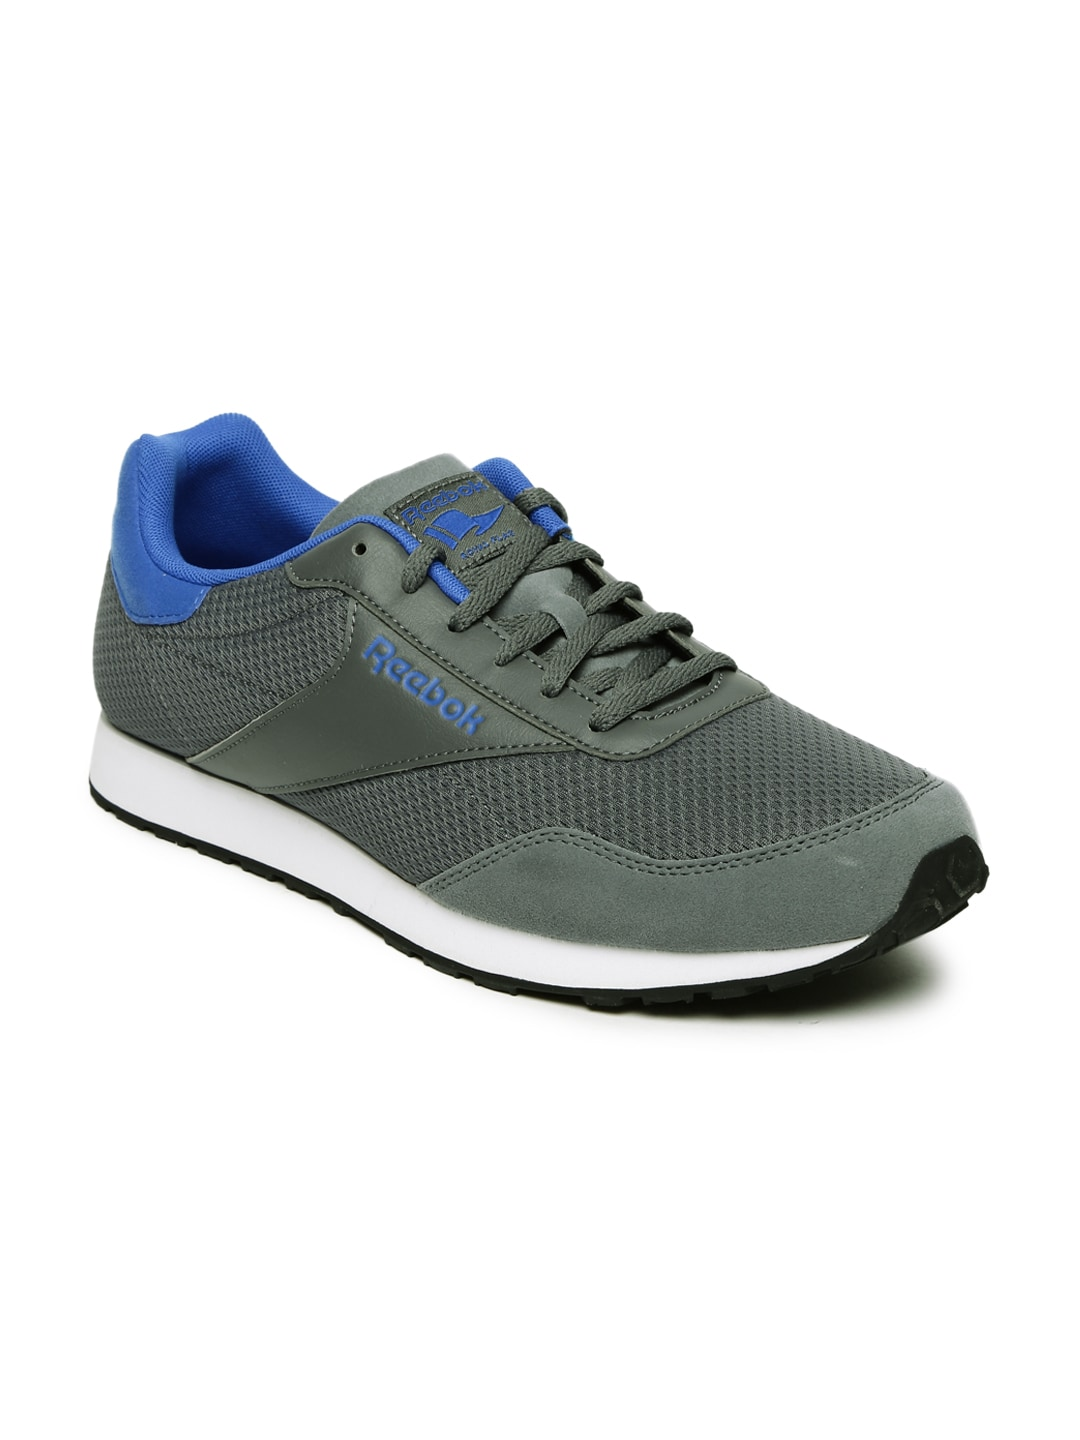 b350da9f70b Reebok Classic Shoes - Buy Reebok Classic Shoes online in India